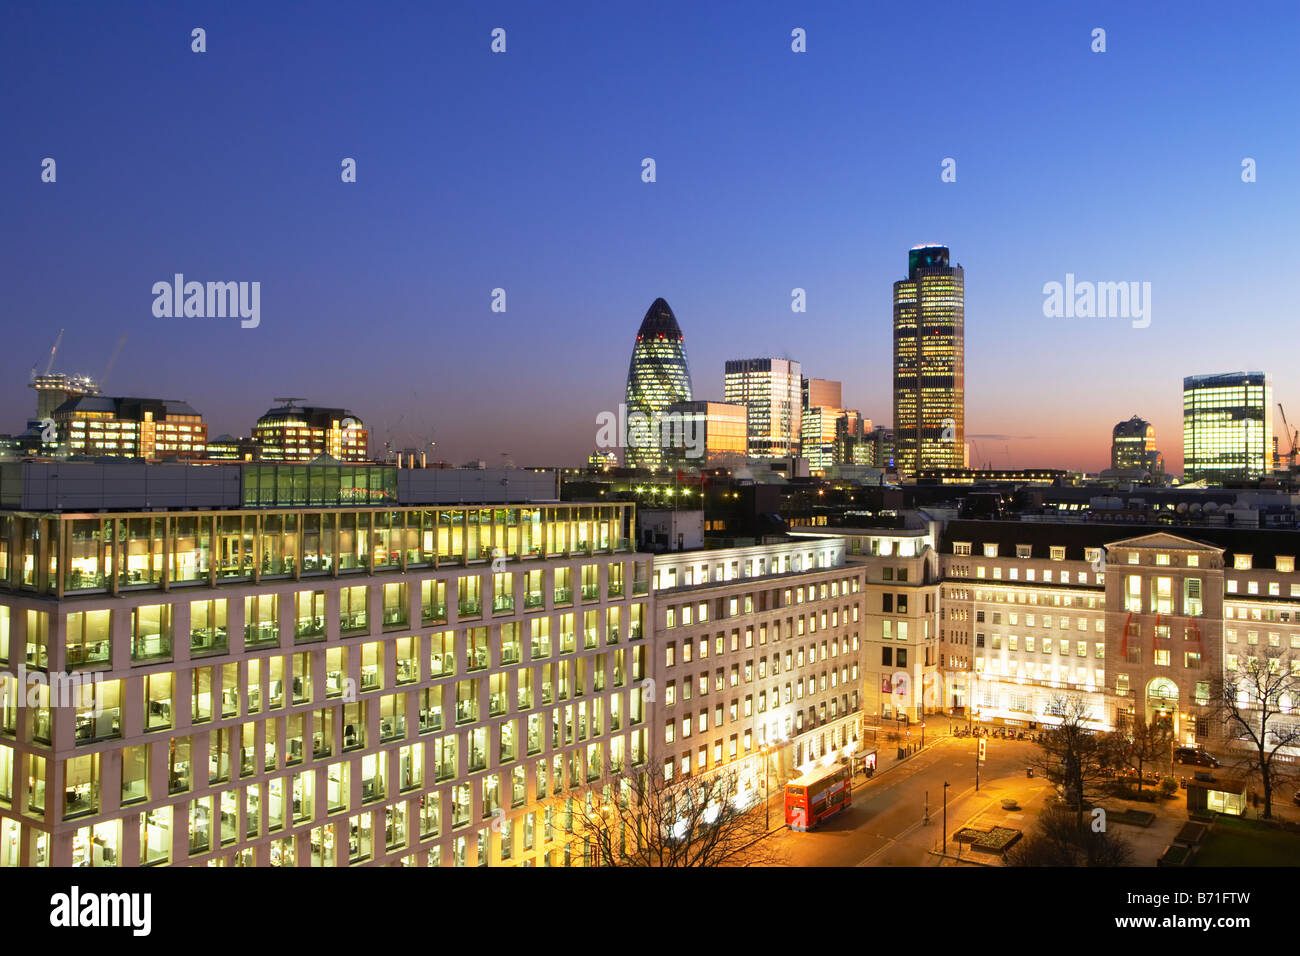 Photo de nuit de Nat West Tower Gherkin et toits de Londres Londres Angleterre Photo Stock